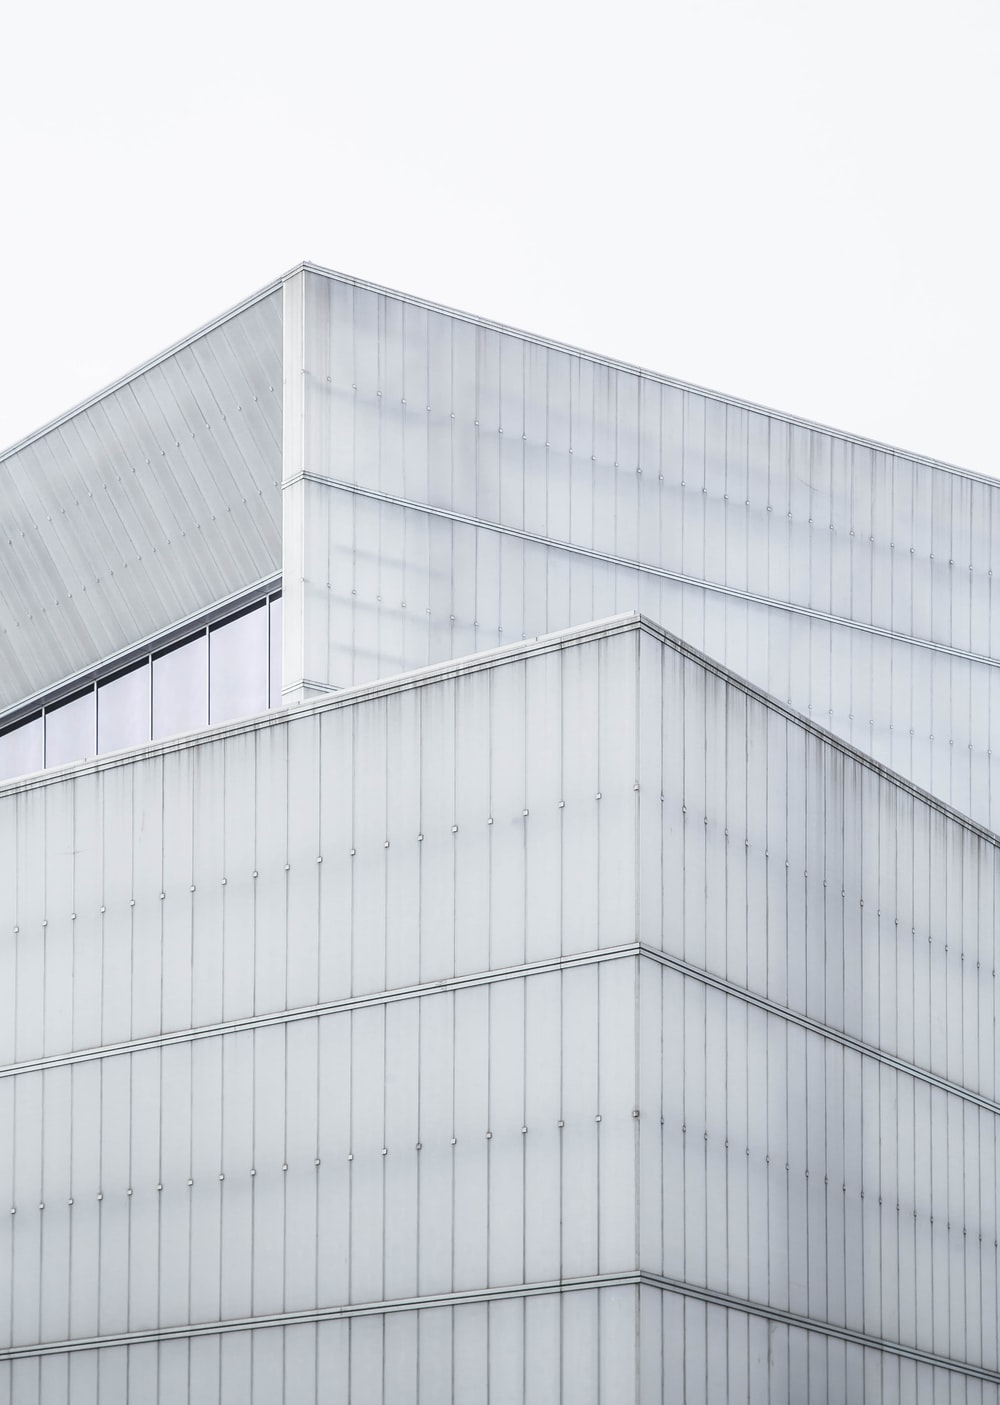 gray wall paint building during daytime